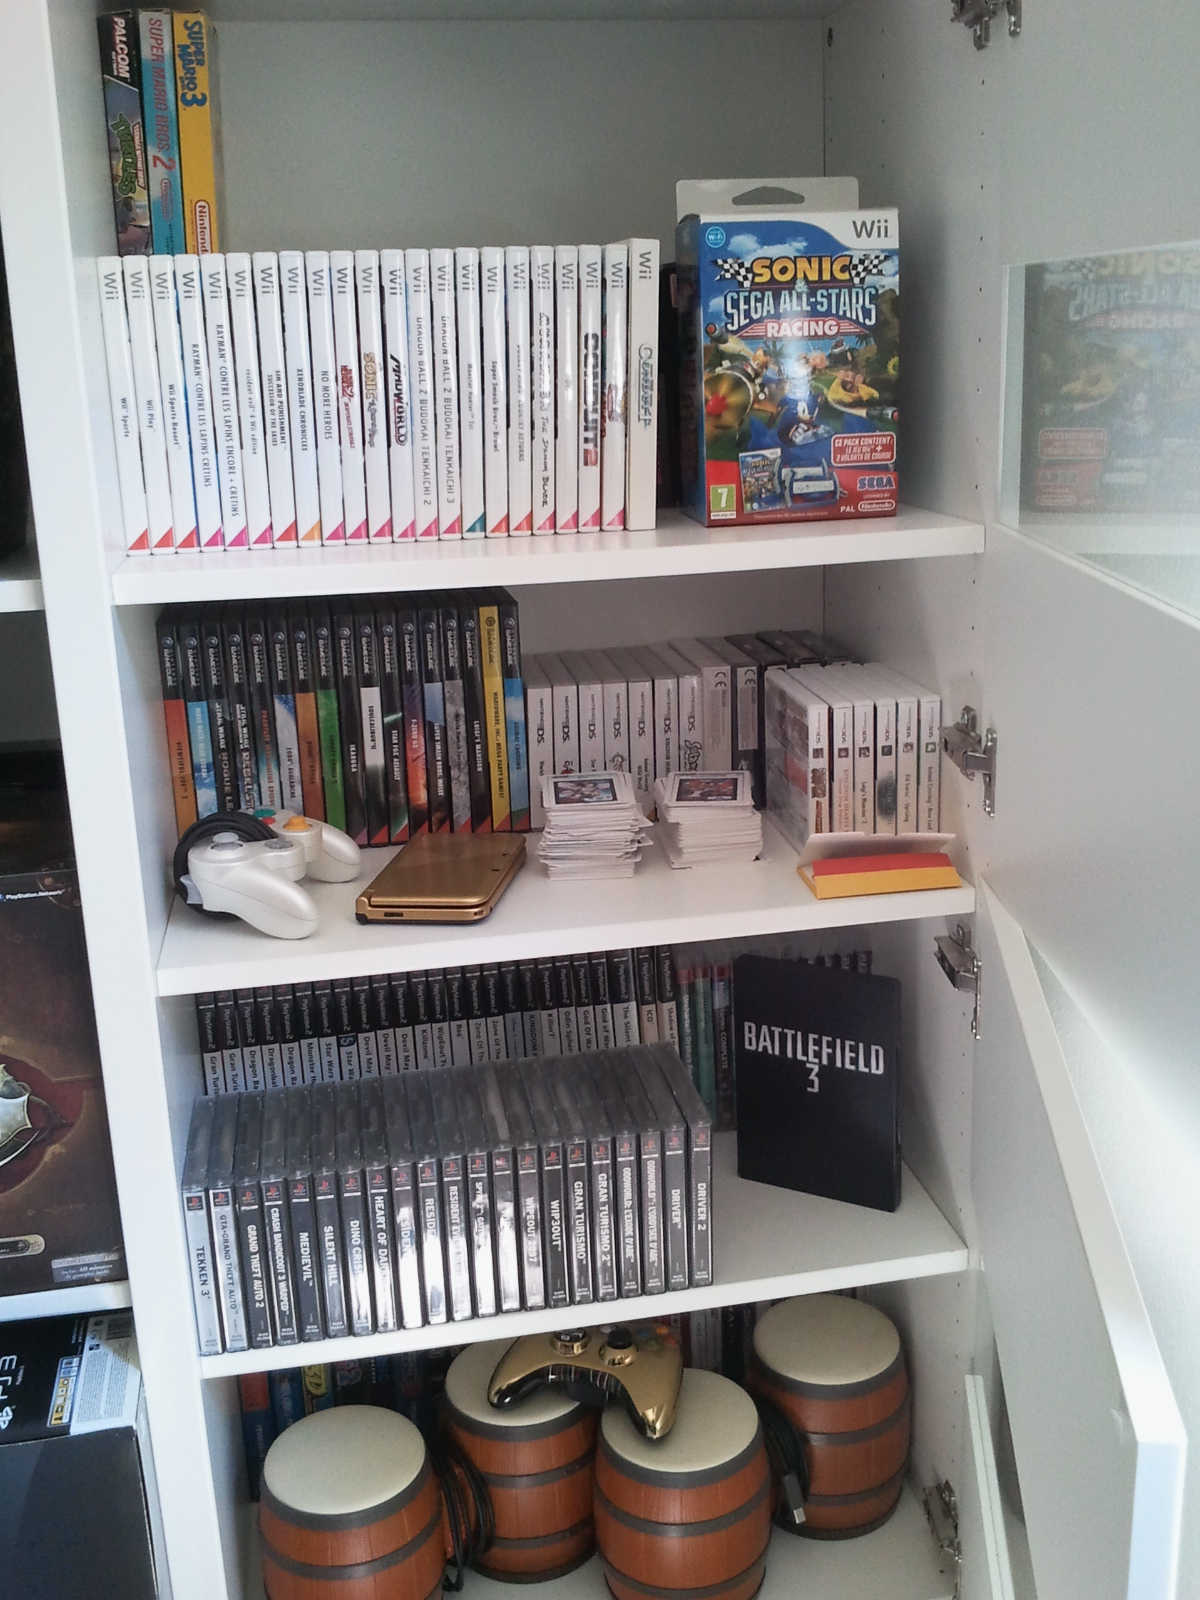 Collection de Labuse   ( Nouvelle  GAMEROOM en page 1  ) - Page 4 24150820140503142209